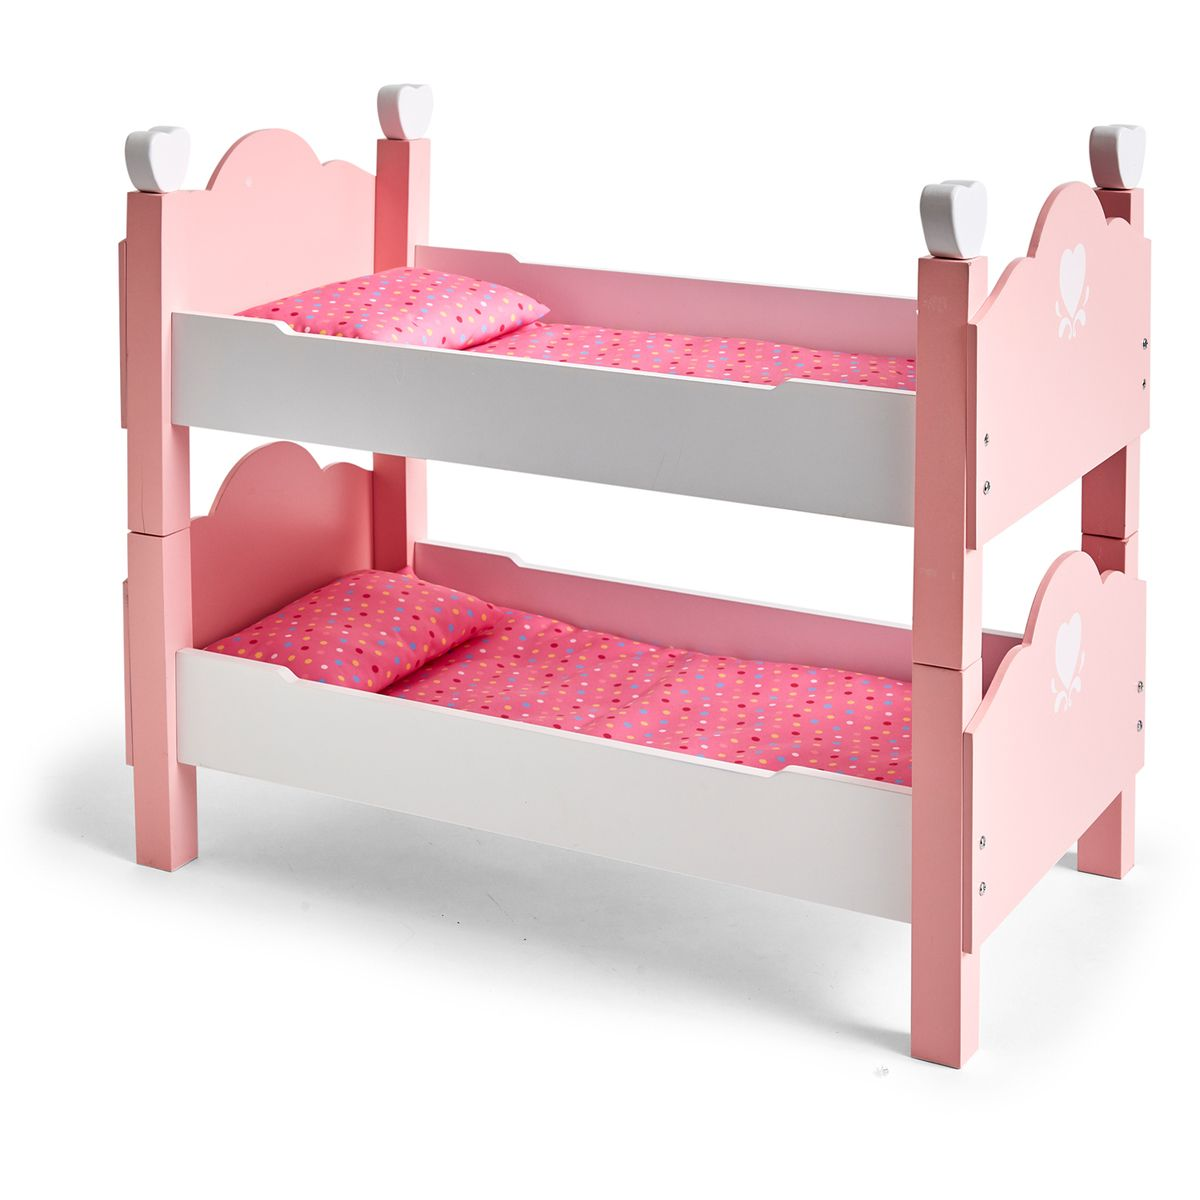 Tinkers Bunk Bed Big W Wooden Bunk Beds Bunk Beds Bed